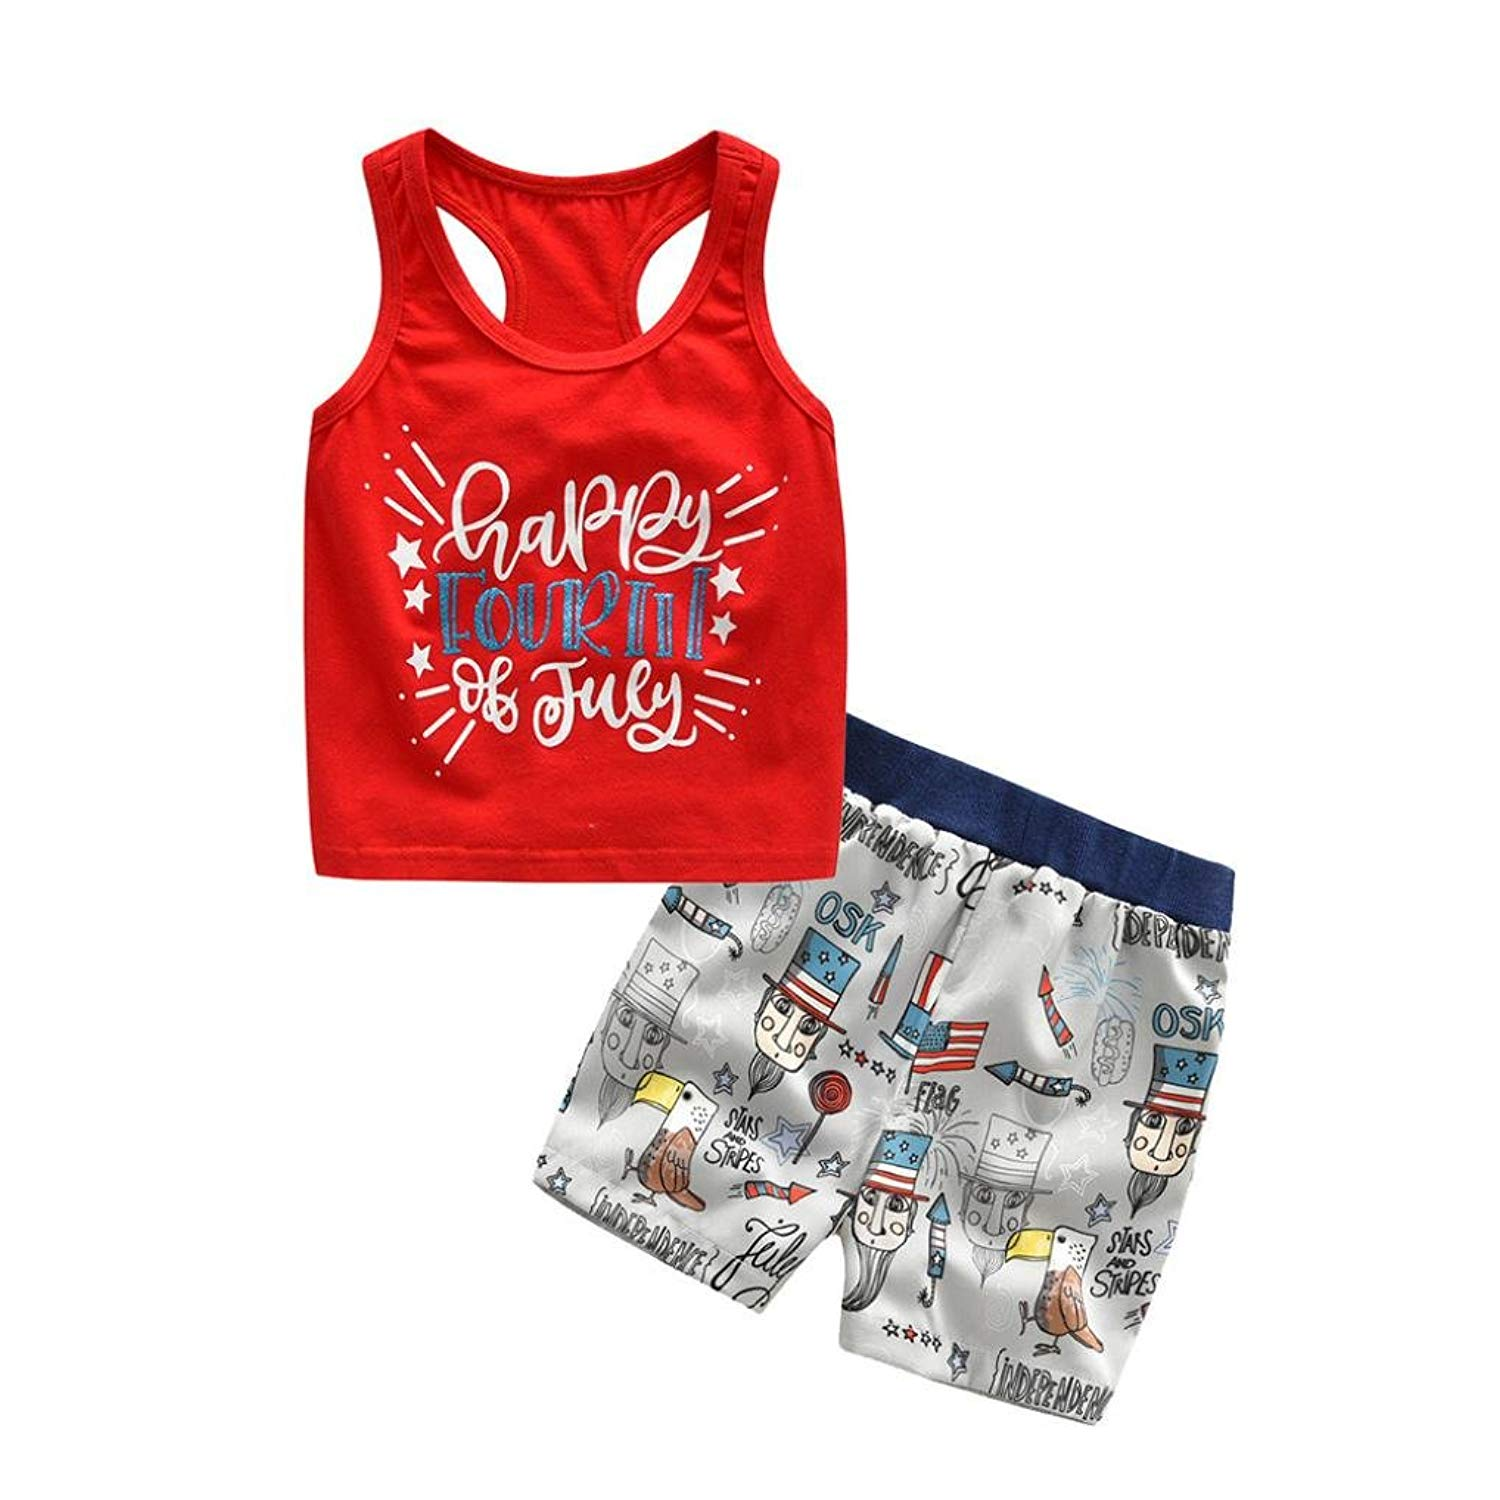 Jchen TM Toddler Baby Boys Girls Stars Striped Vest Tops+Shorts 4th of July Outfits Set for 0-24 Months